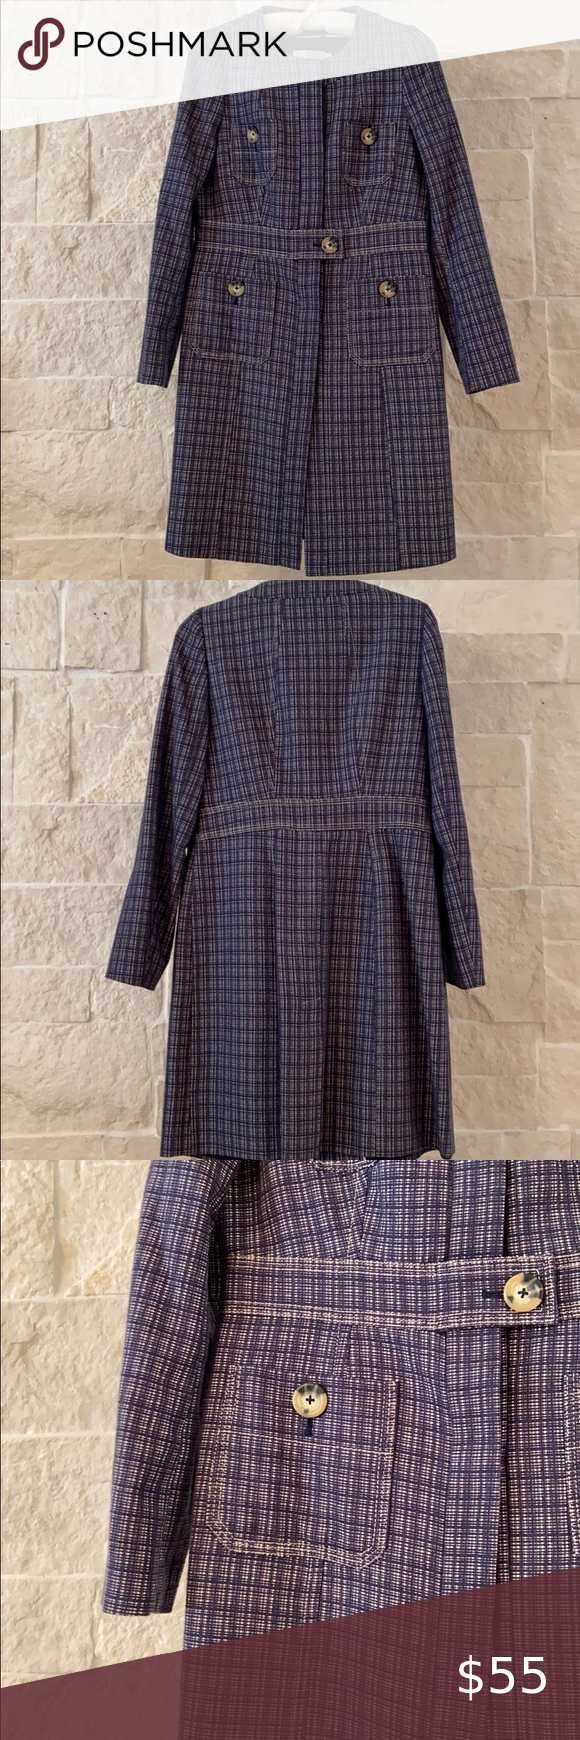 Boden Trench Coat Navy Plaid EUC —Size 8